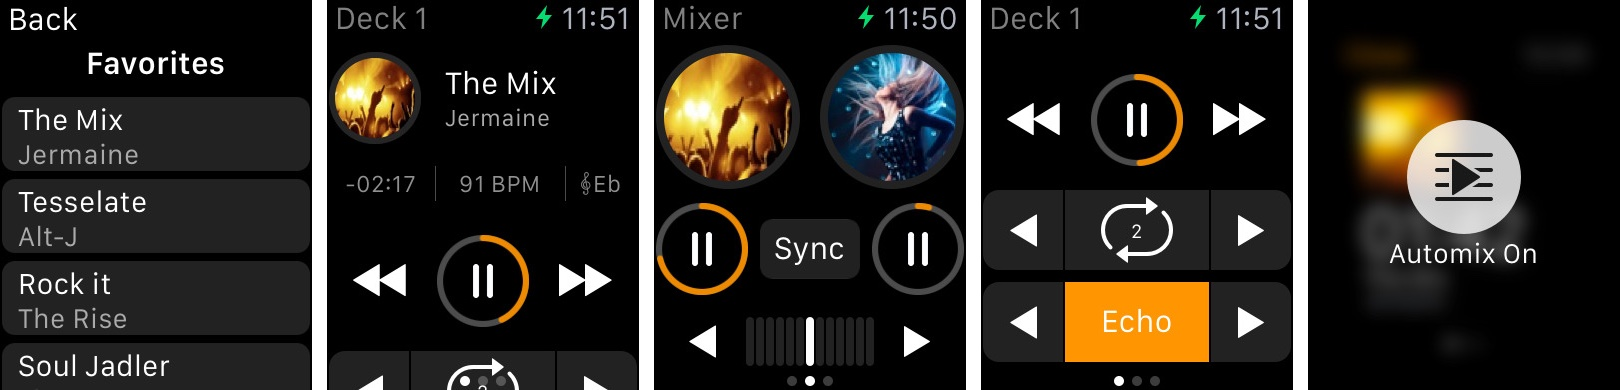 djay for Apple Watch screenshot 001